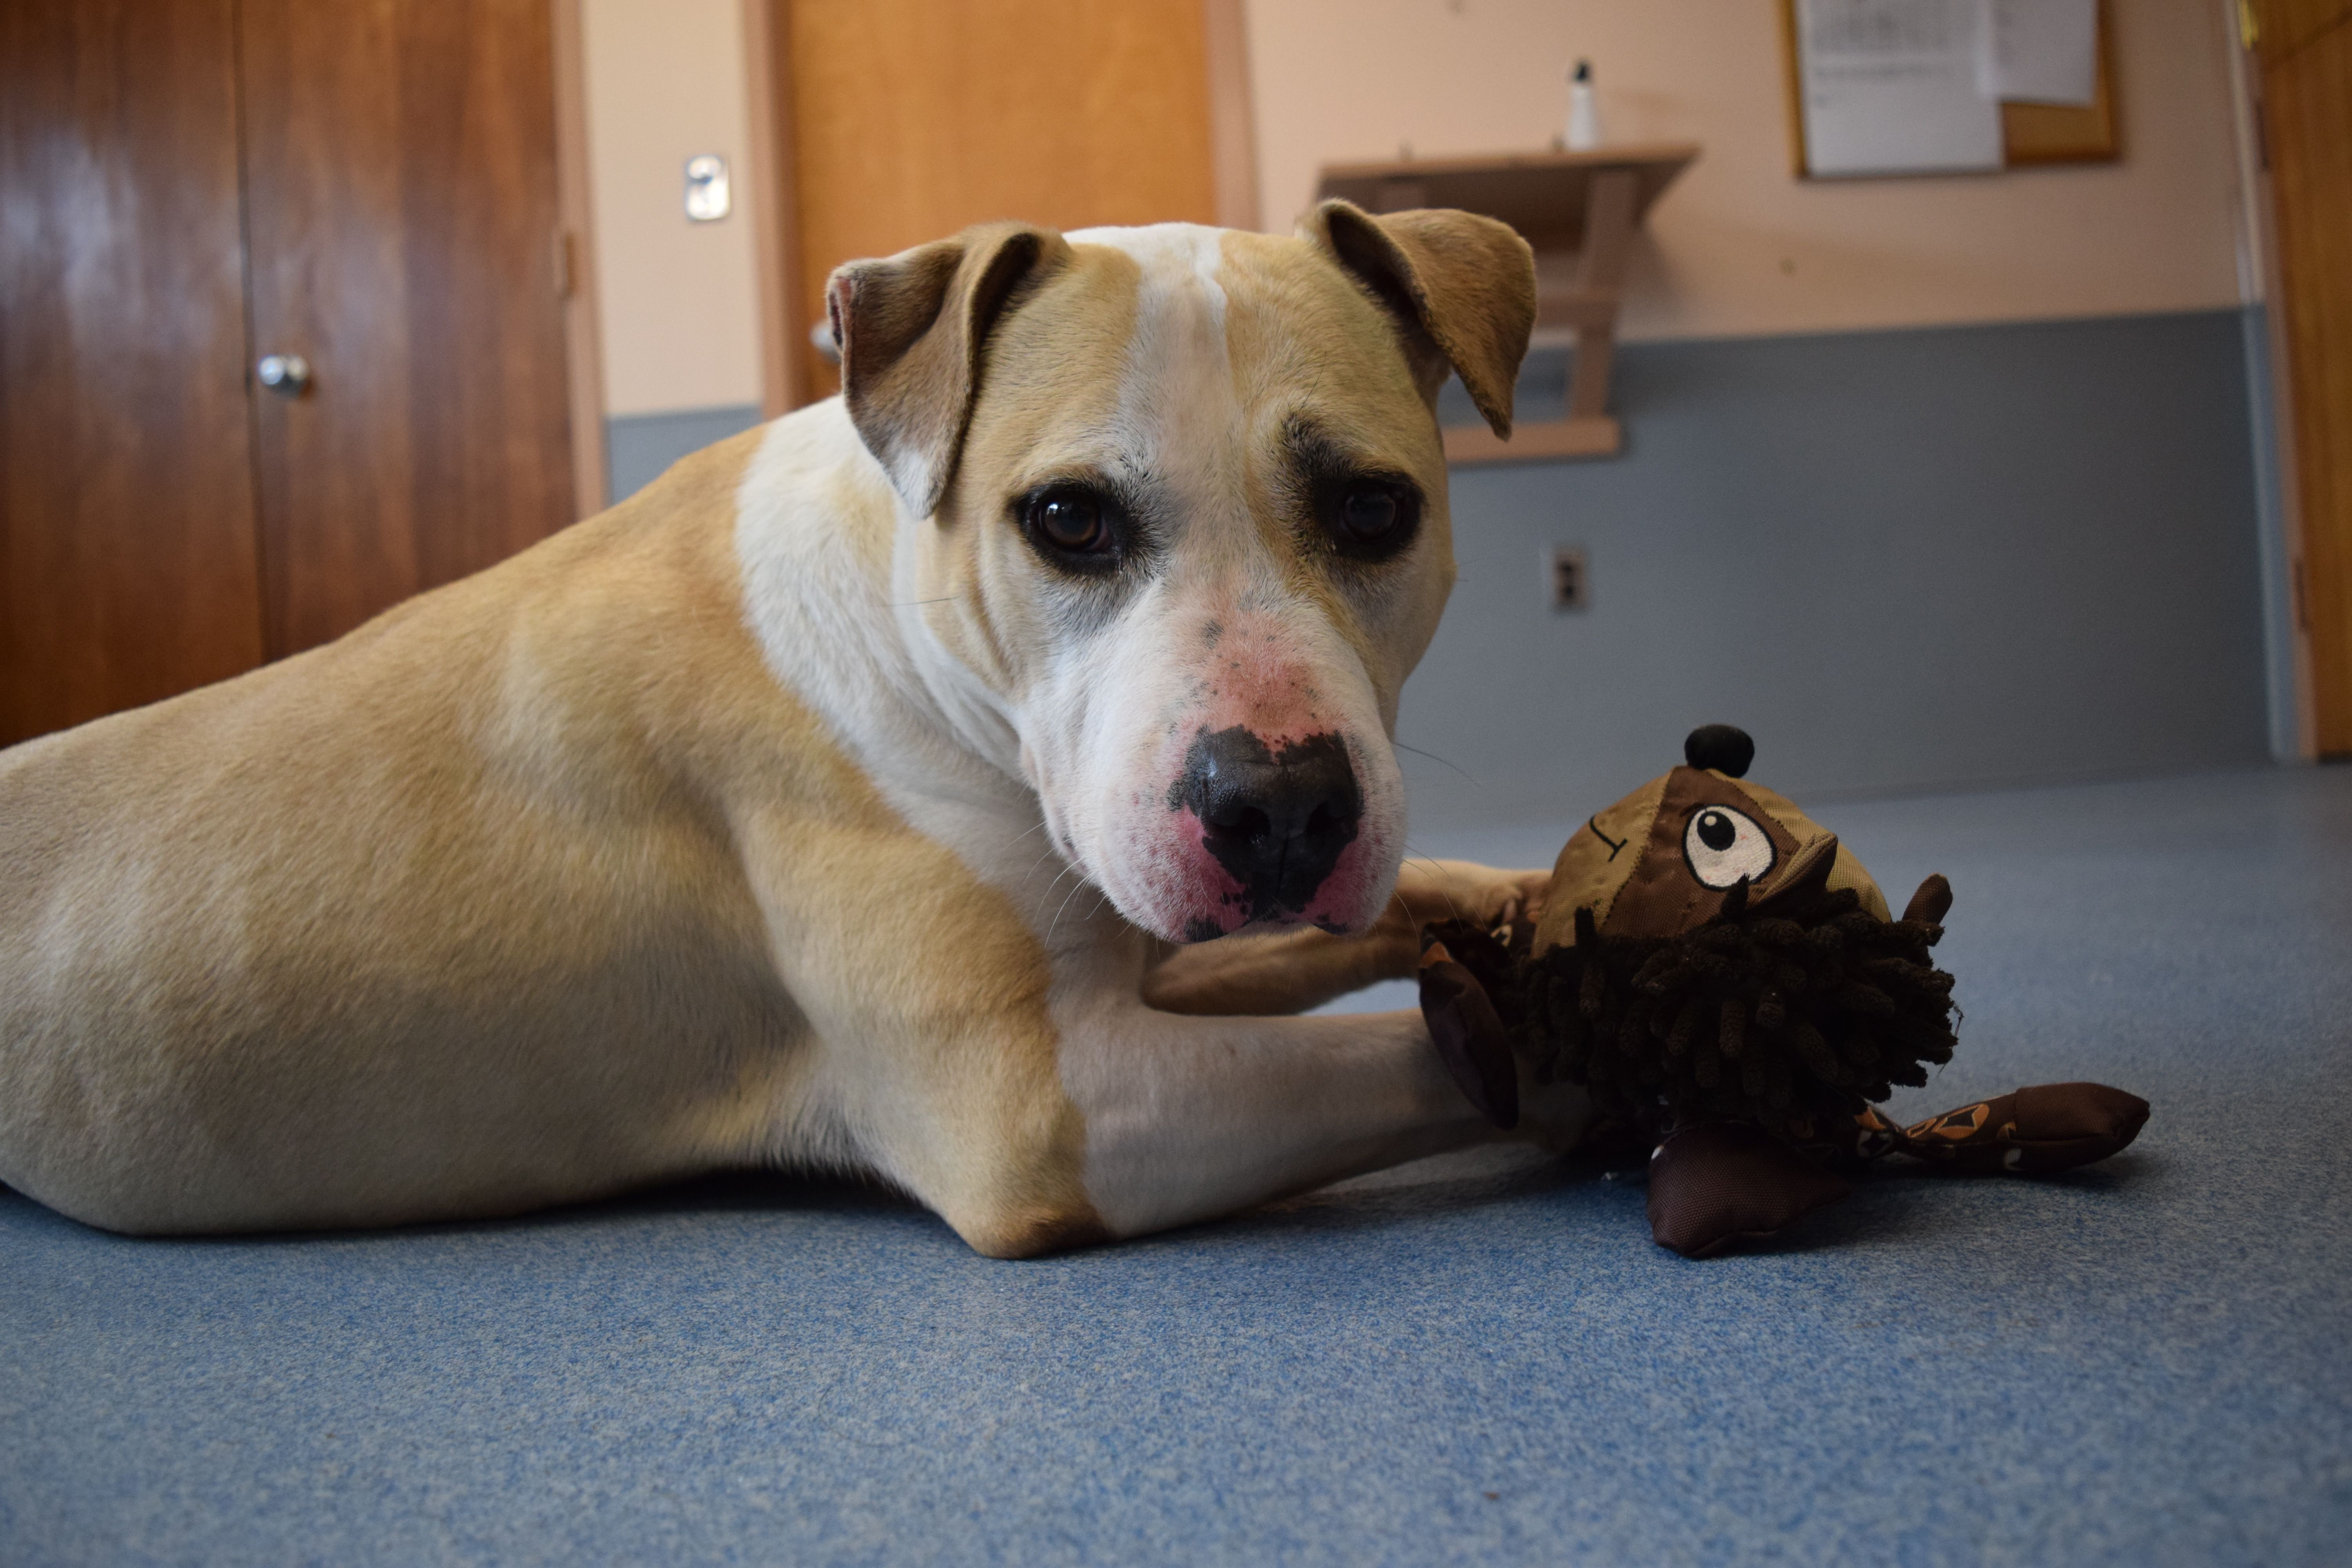 Pin By Michele Whittaker On Adopted Adoption Pitbull Terrier Animals